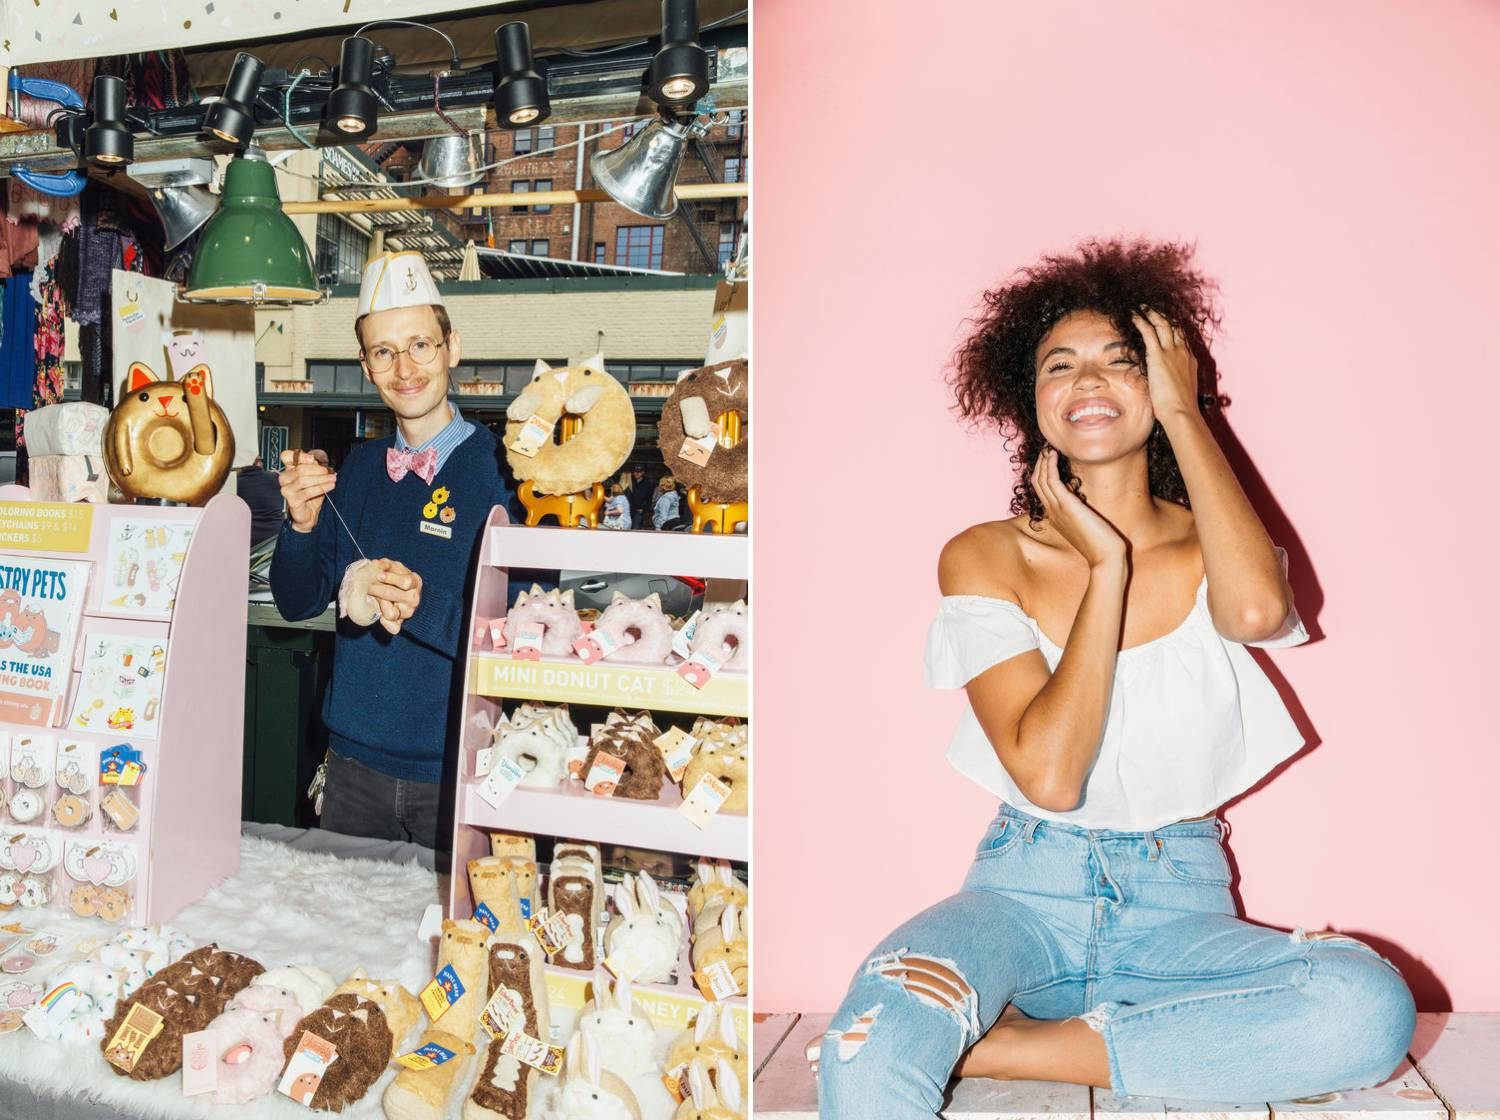 Amber Fouts' photos depict a smiling, mustachioed man selling doughnuts from a kiosk; then a smiling Black woman wearing a white shirt and jeans sitting against a pink studio backdrop.